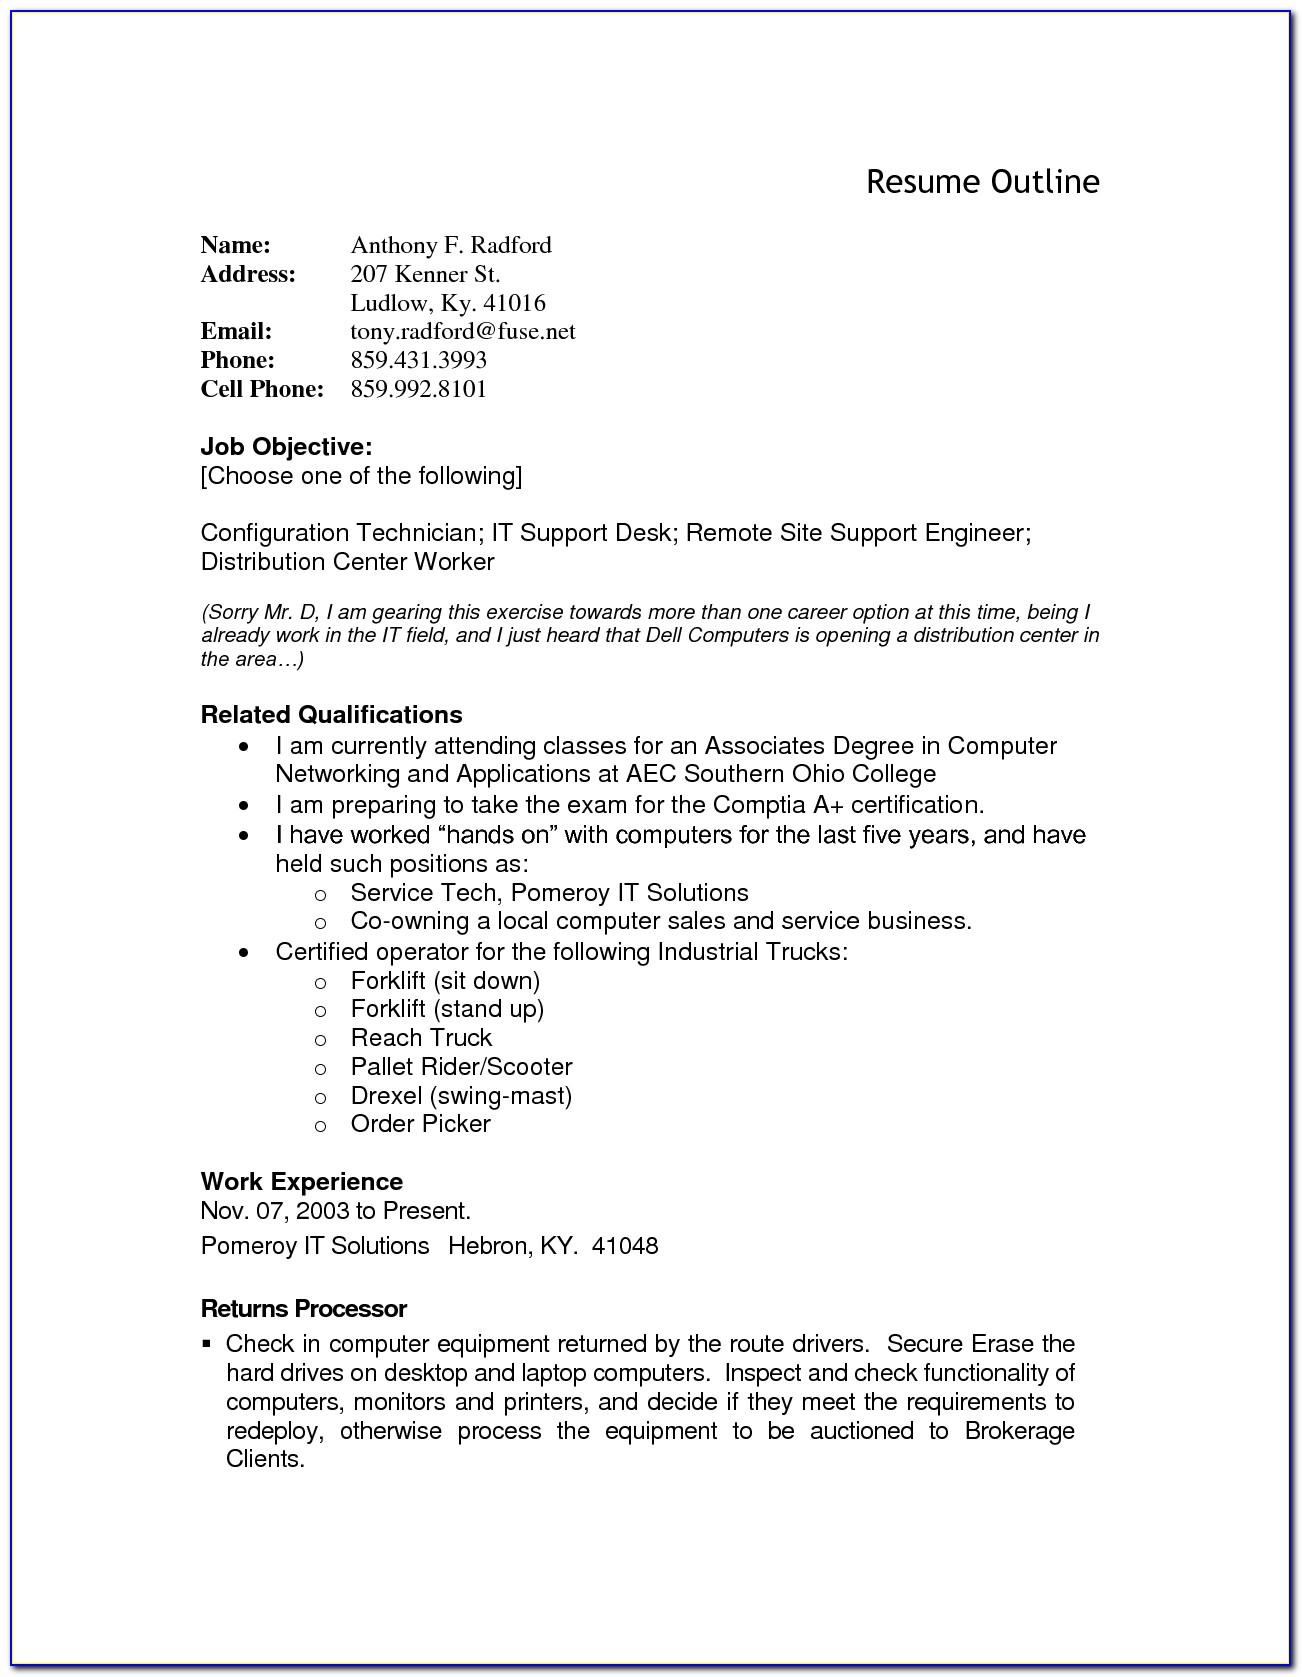 Resume Example Resume Outline Template Resume Builder Template In Free Resume Builder And Download